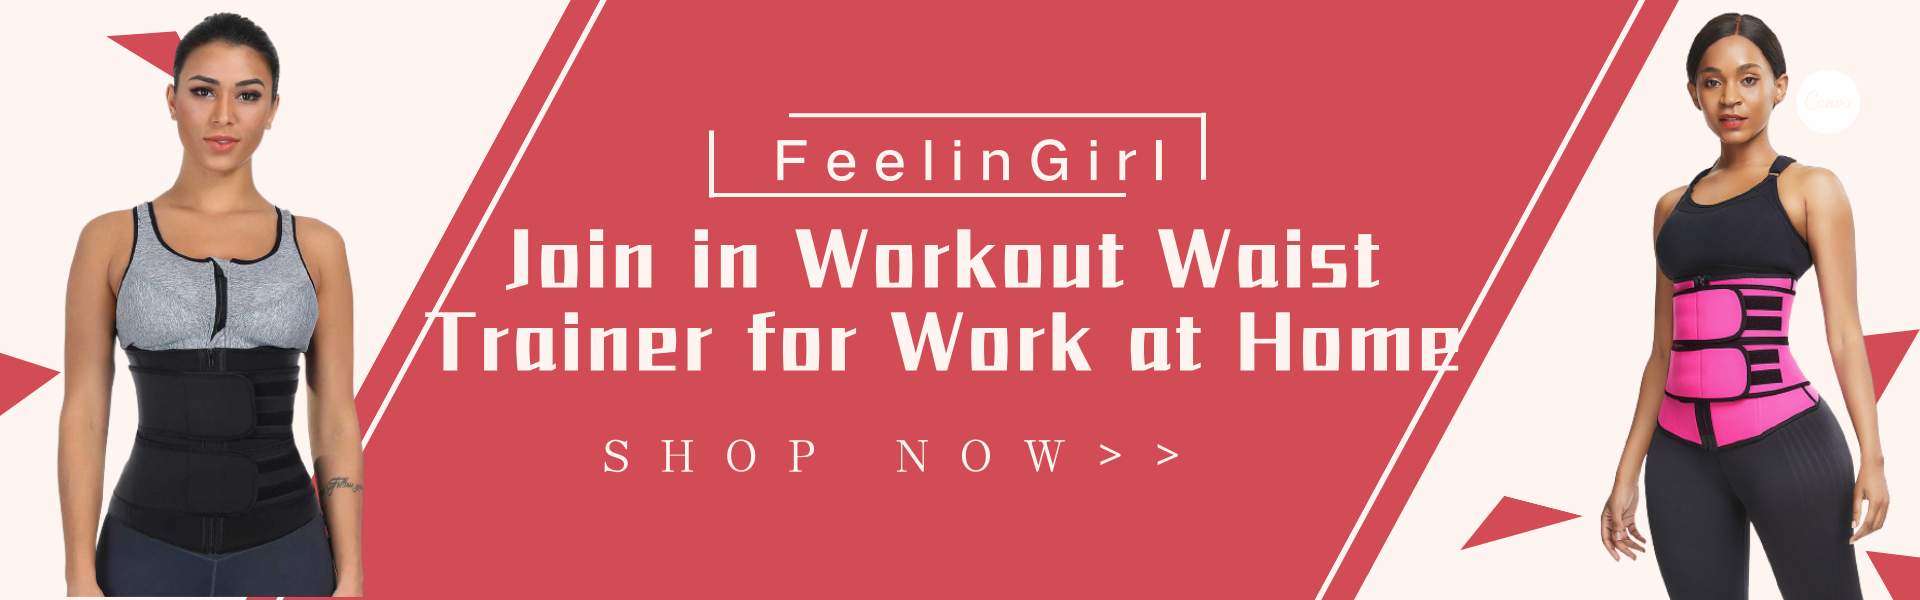 Join in Workout Waist Trainer for Work at Home